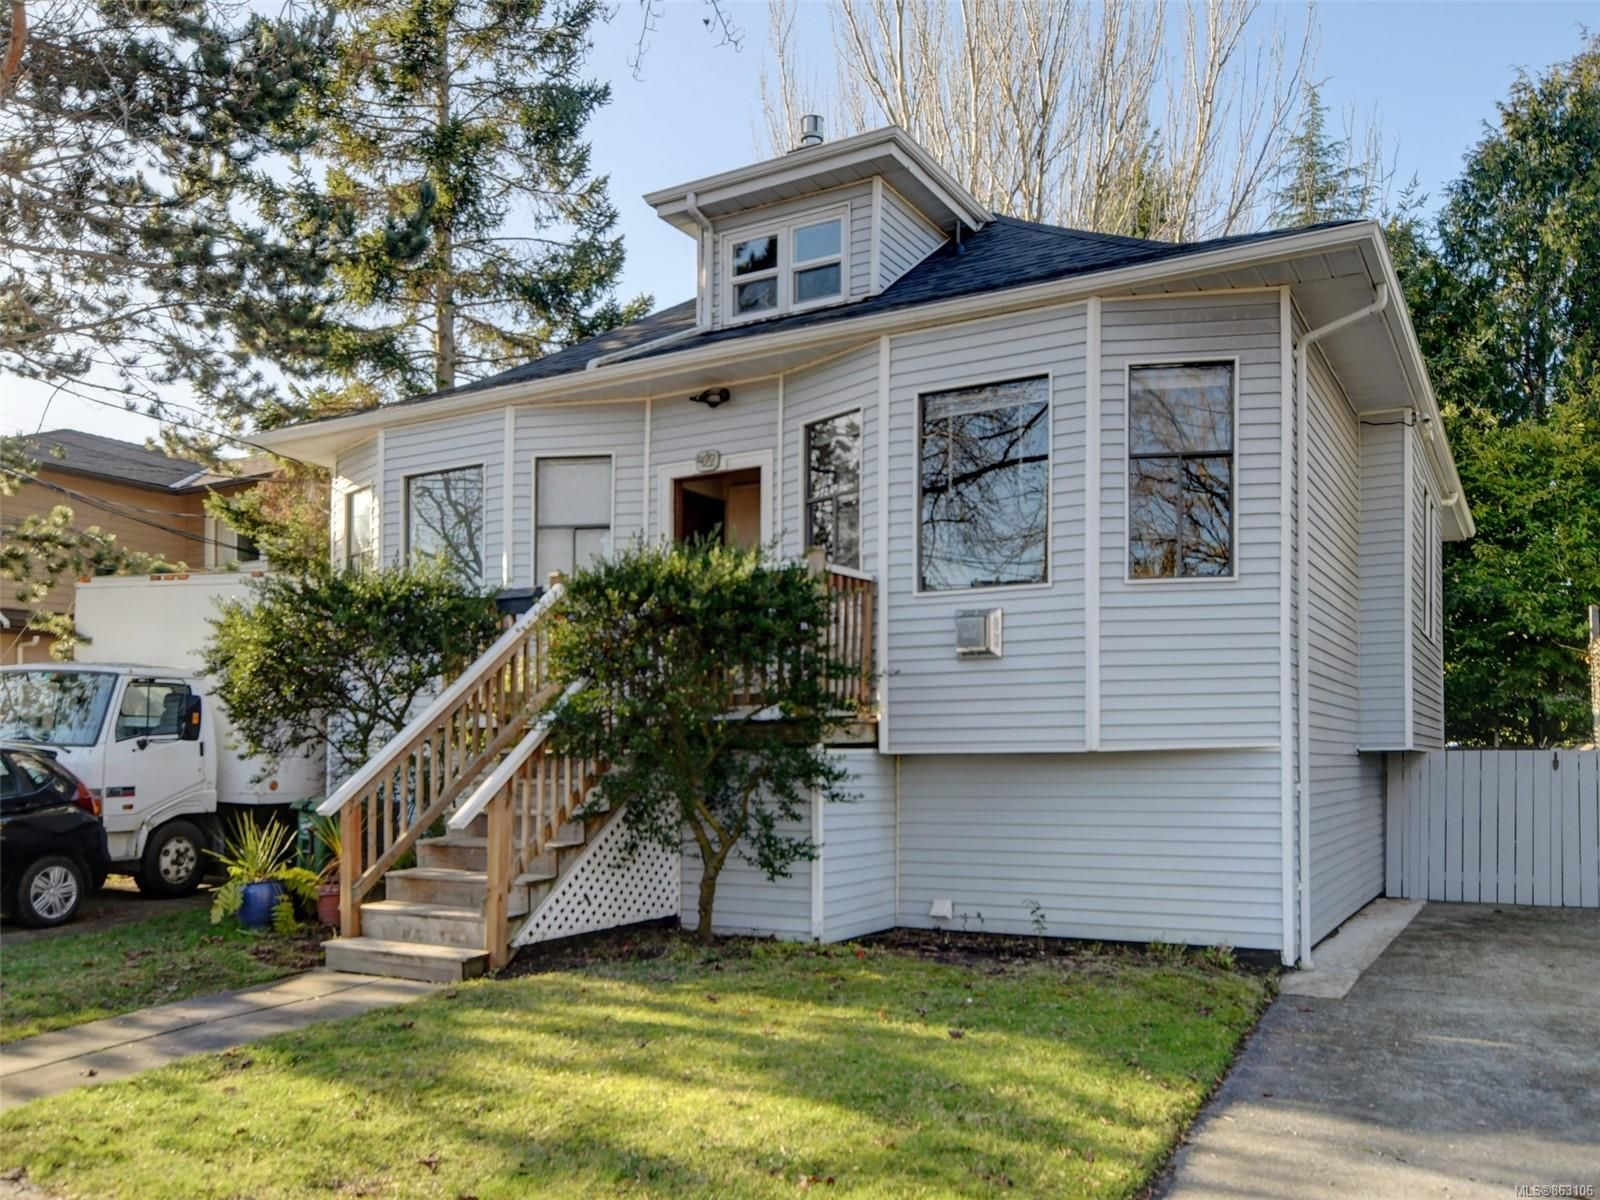 Main Photo: 422 Powell St in : Vi James Bay Full Duplex for sale (Victoria)  : MLS®# 863106